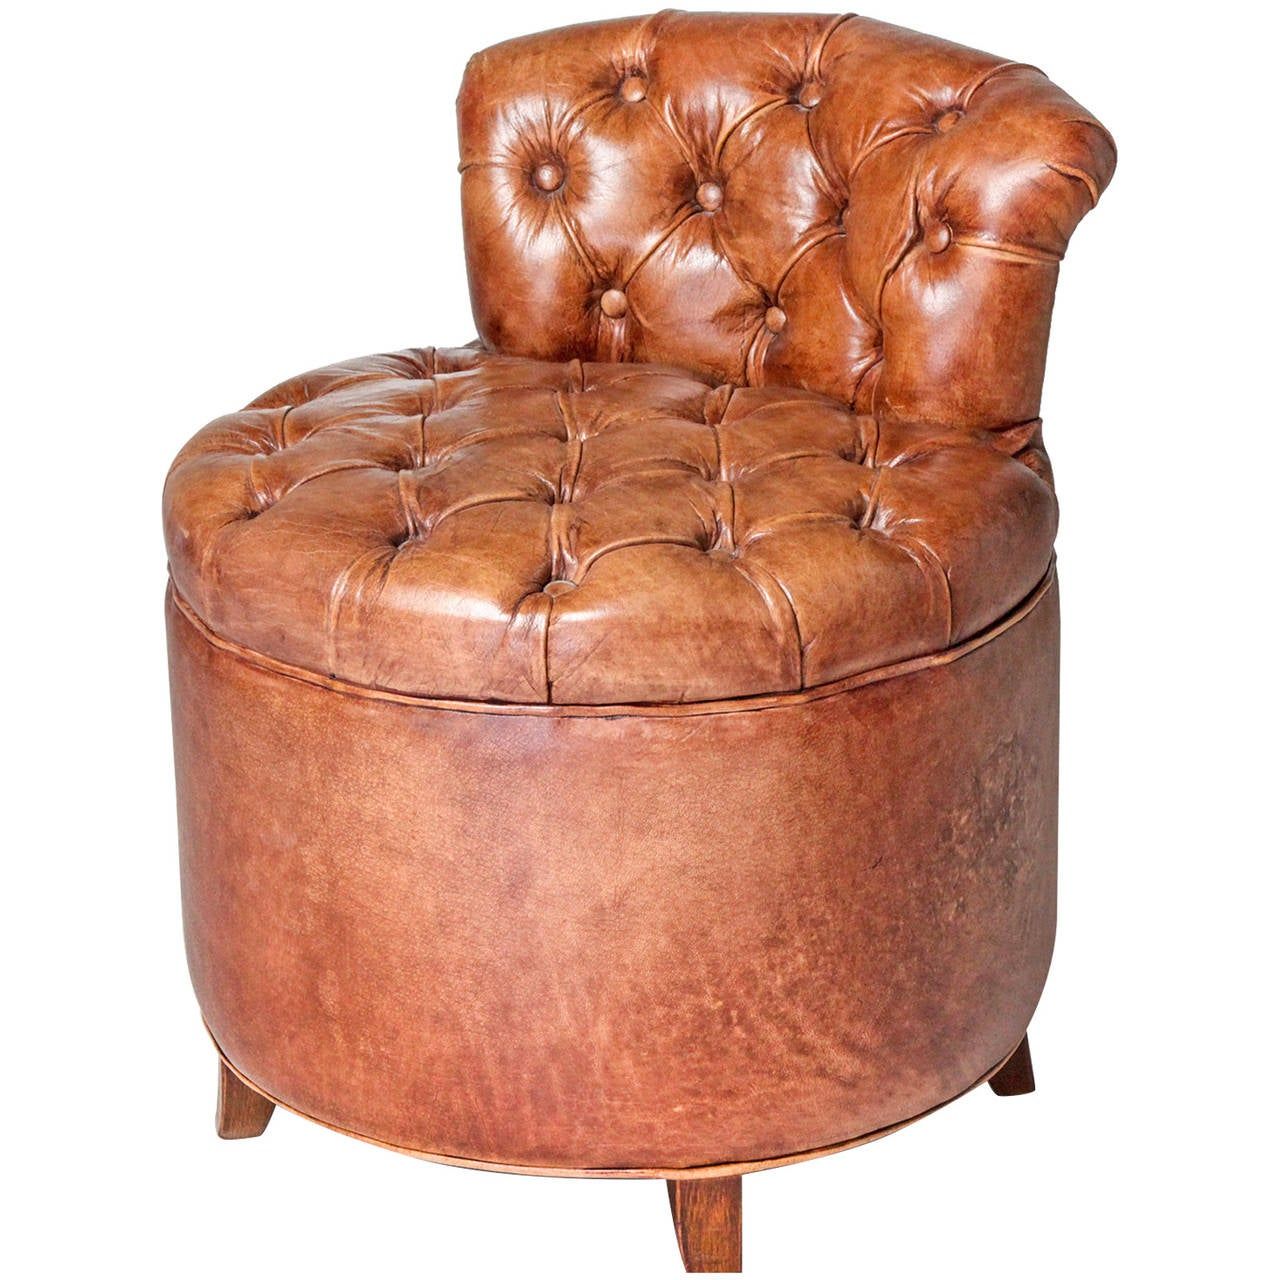 Tufted Leather Chair Tufted Leather Chair For Sale At 1stdibs